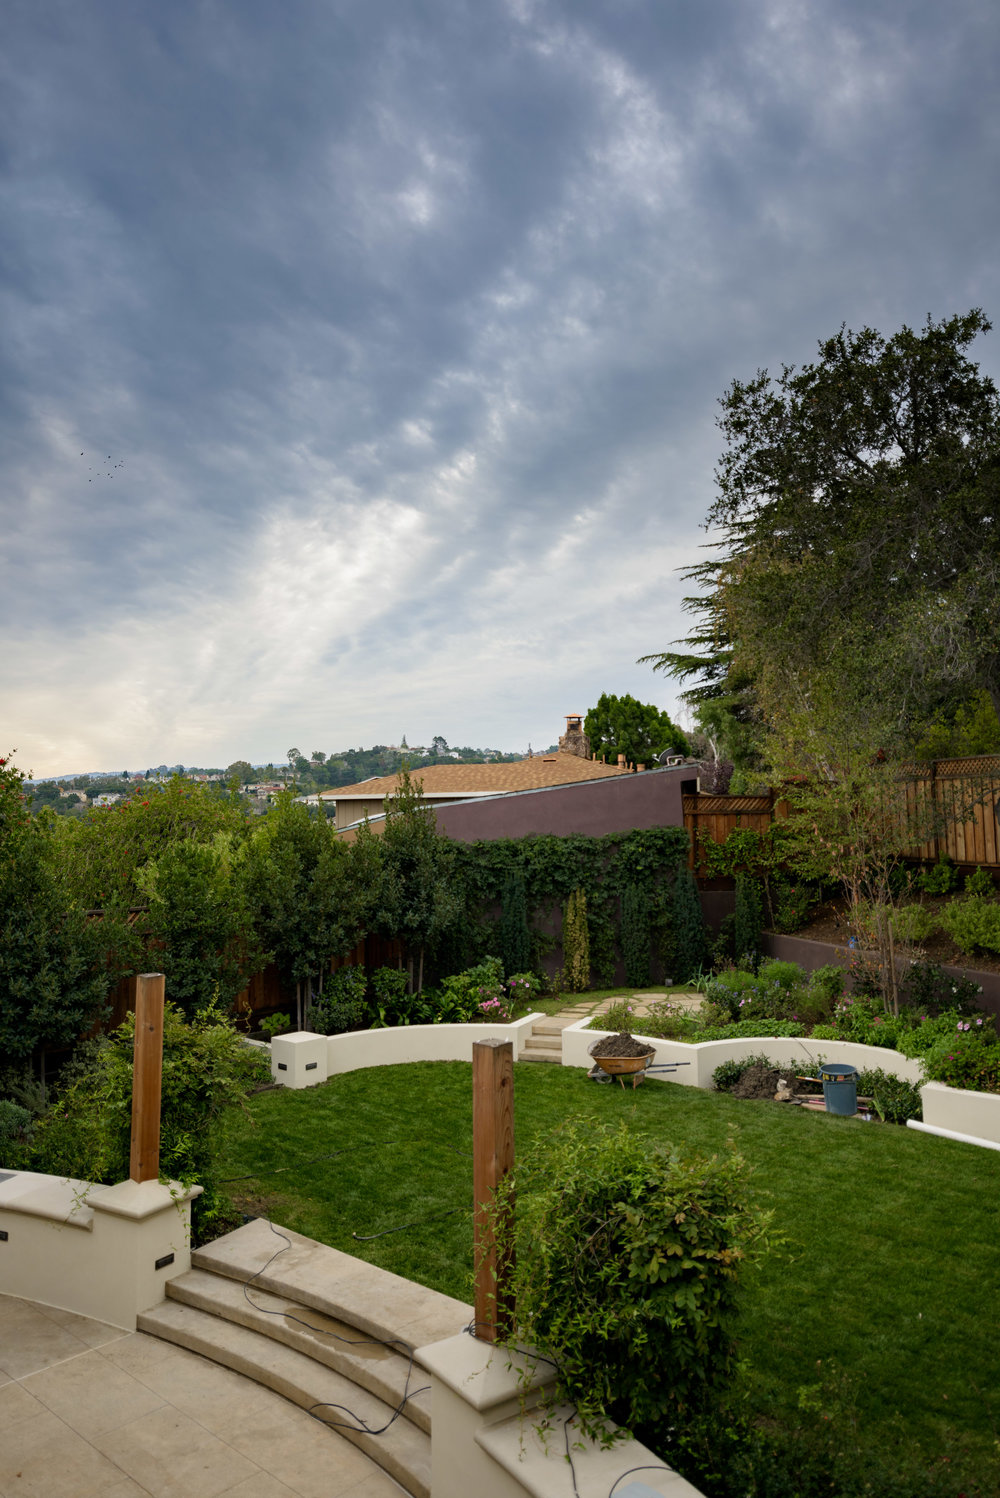 8647_Hillcrest_Rd_San_Carlos_Residential_Architecture_Photography.jpg